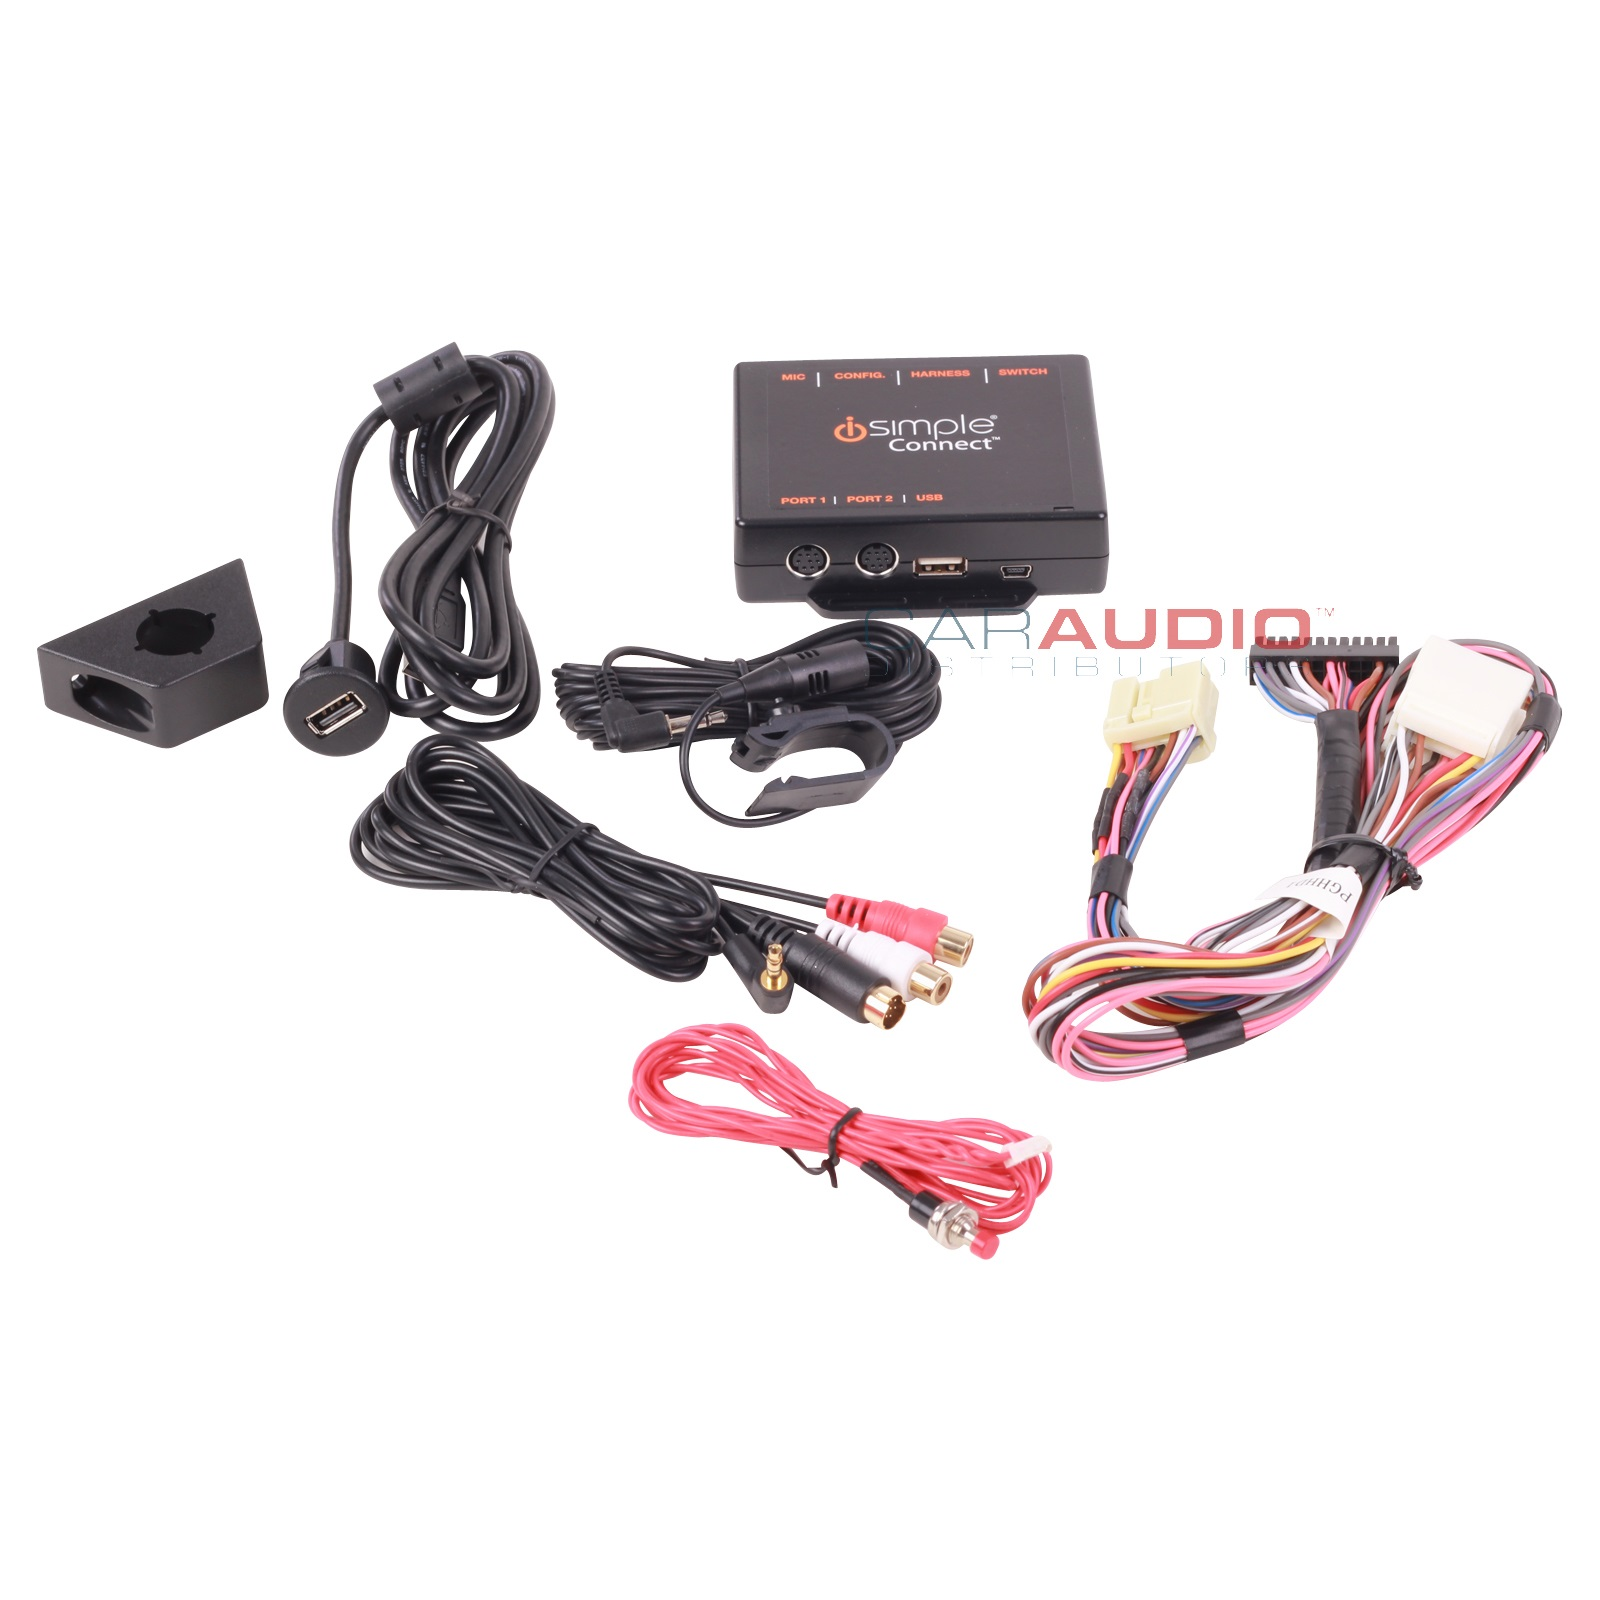 NEW ISIMPLE ISHD651 CONNECT KIT FOR ACURA USB DEVICES